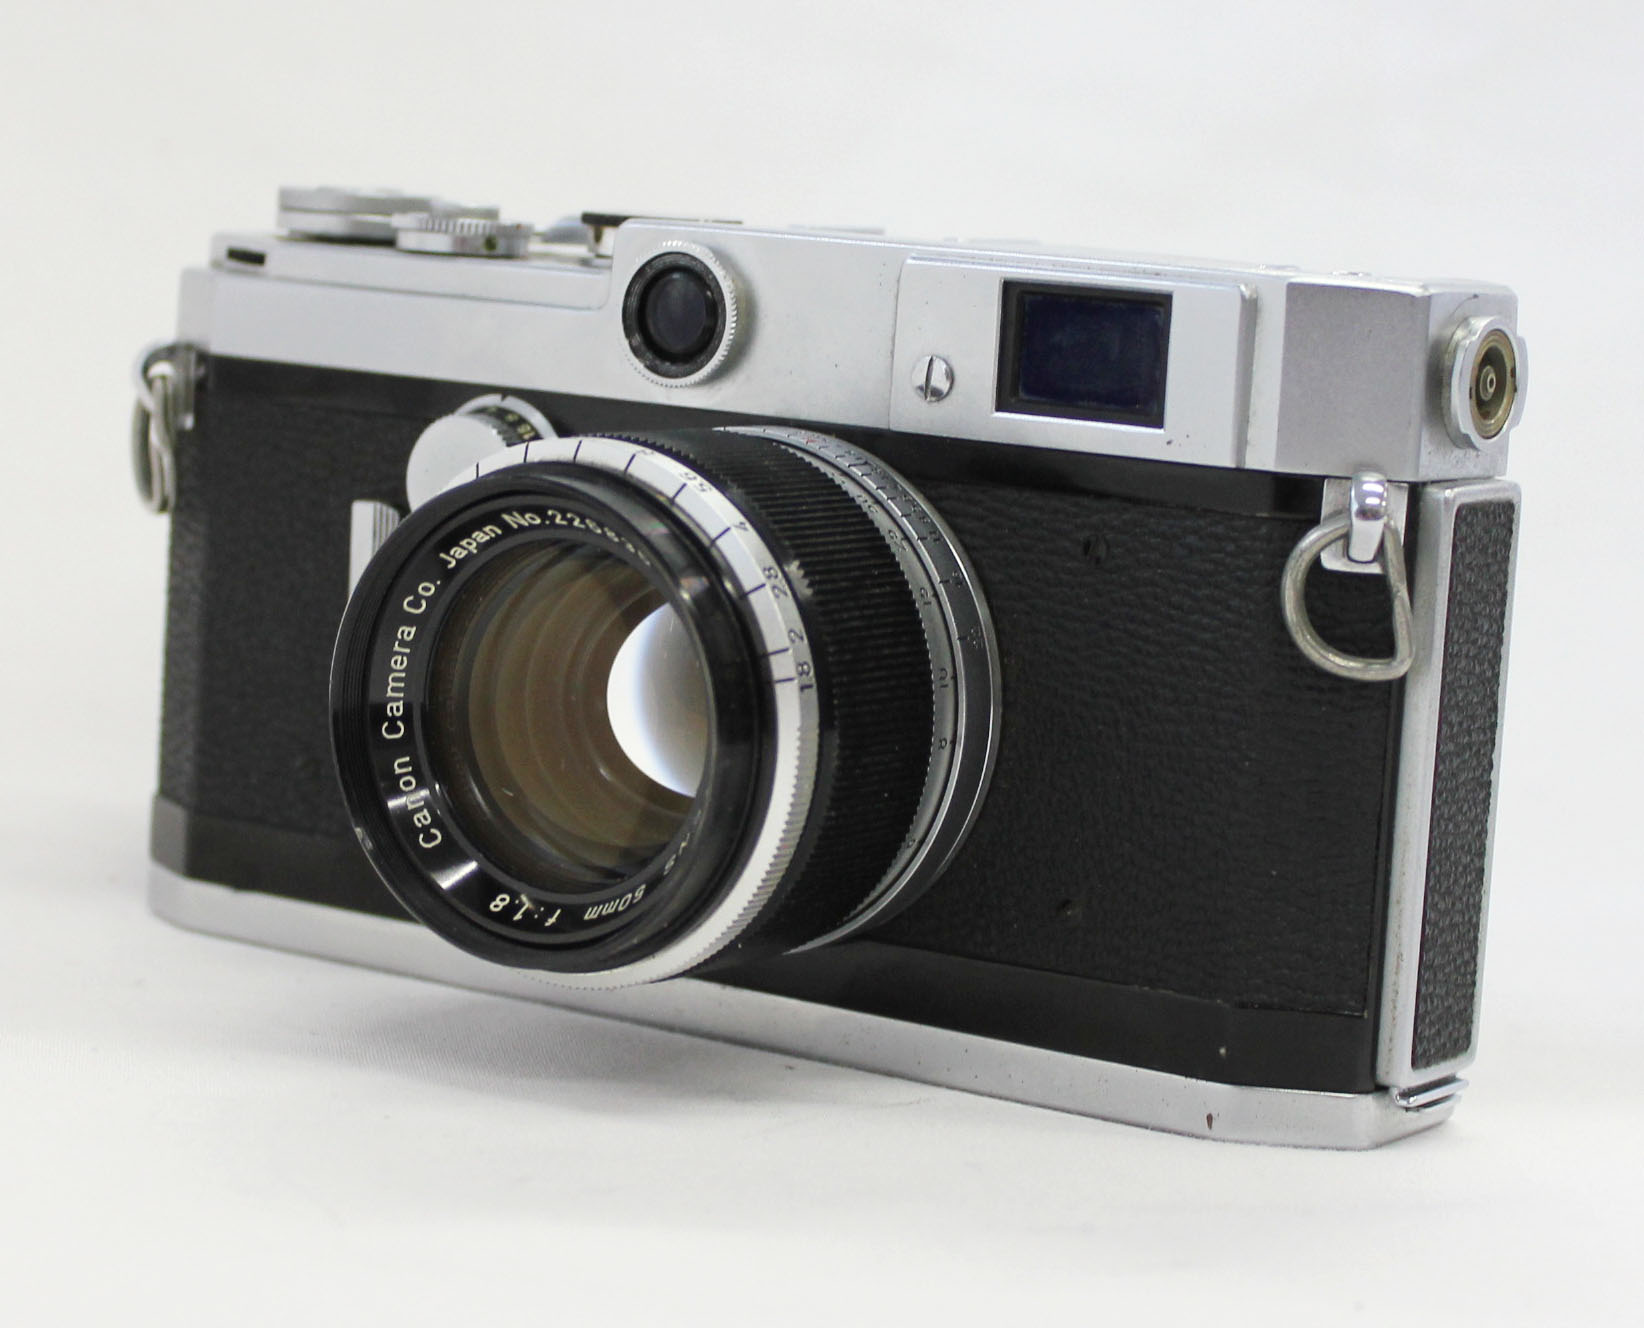 Japan Used Camera Shop | Canon L1 Rangefinder Camera Leica L39 LTM Screw Mount w/ Bonus Lens 50mm F/1.8 from Japan